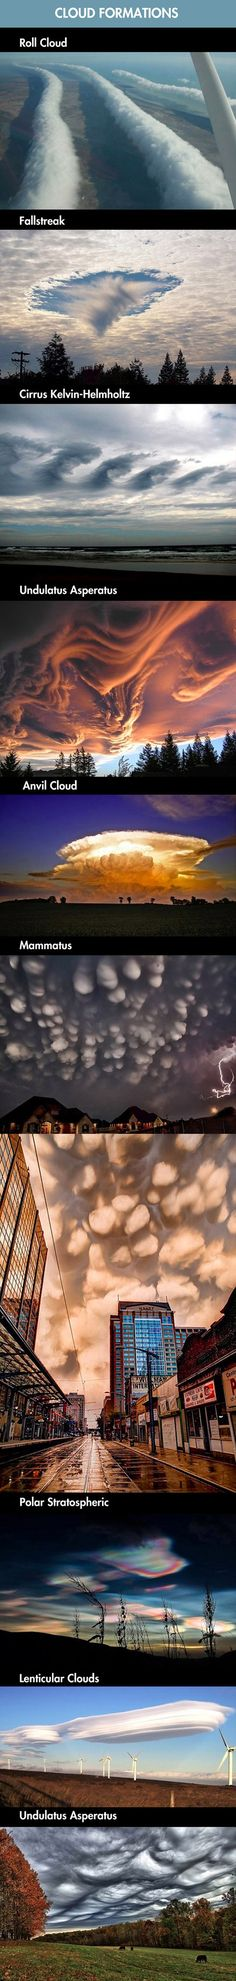 Some incredible cloud formations that exist in nature. (Cool Photography Couple)